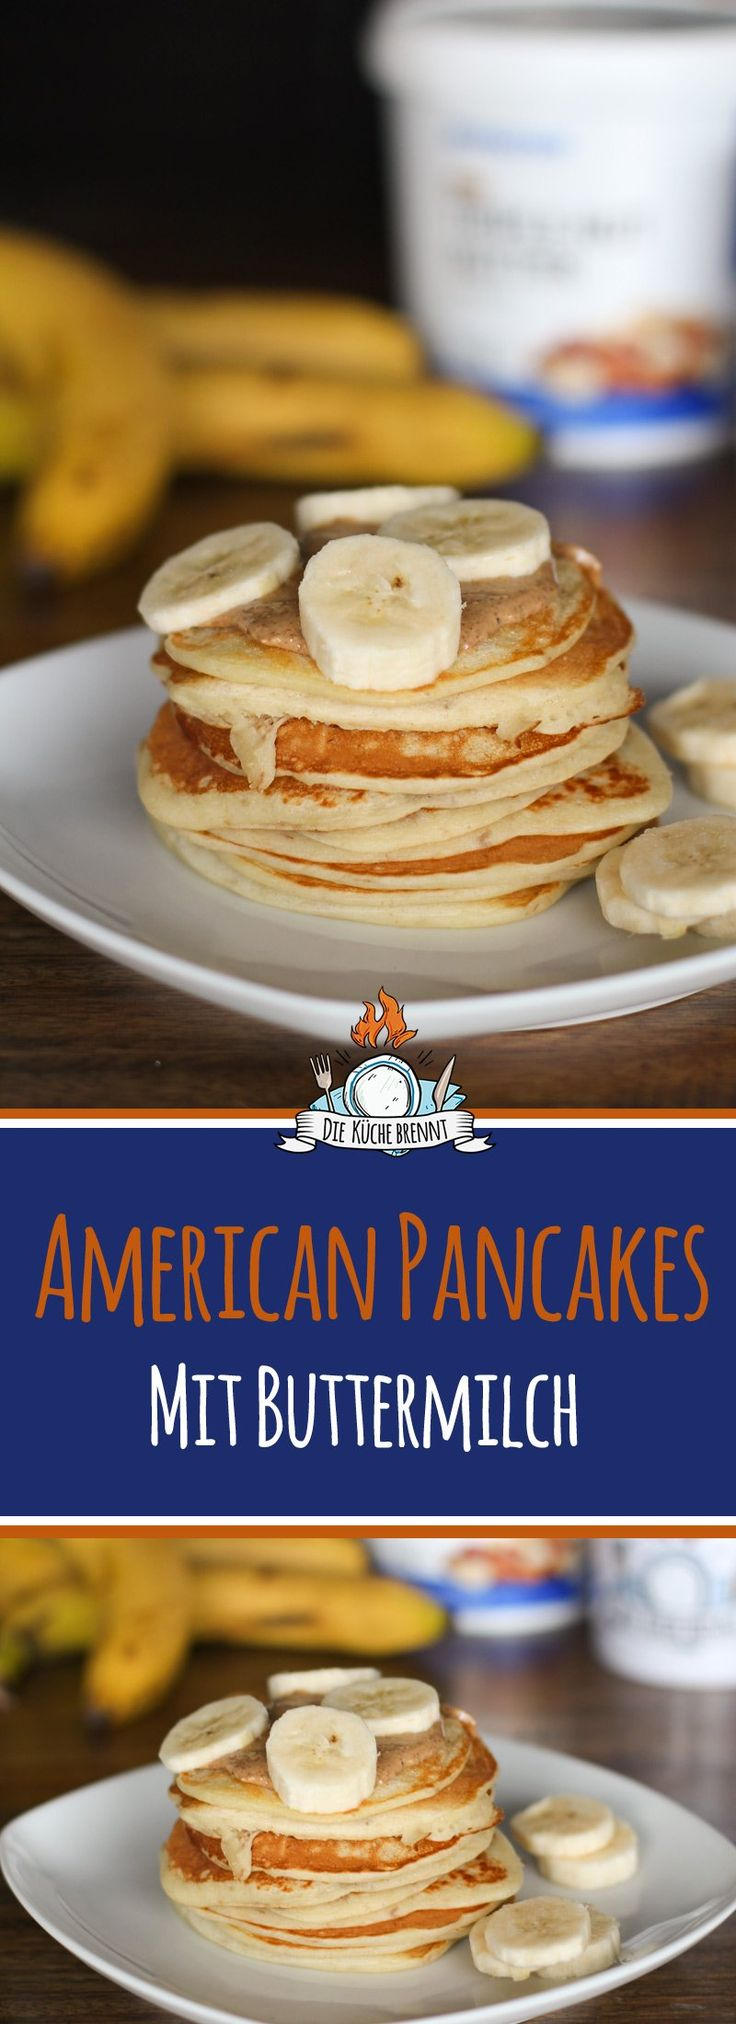 25 best ideas about american pancakes on pinterest. Black Bedroom Furniture Sets. Home Design Ideas